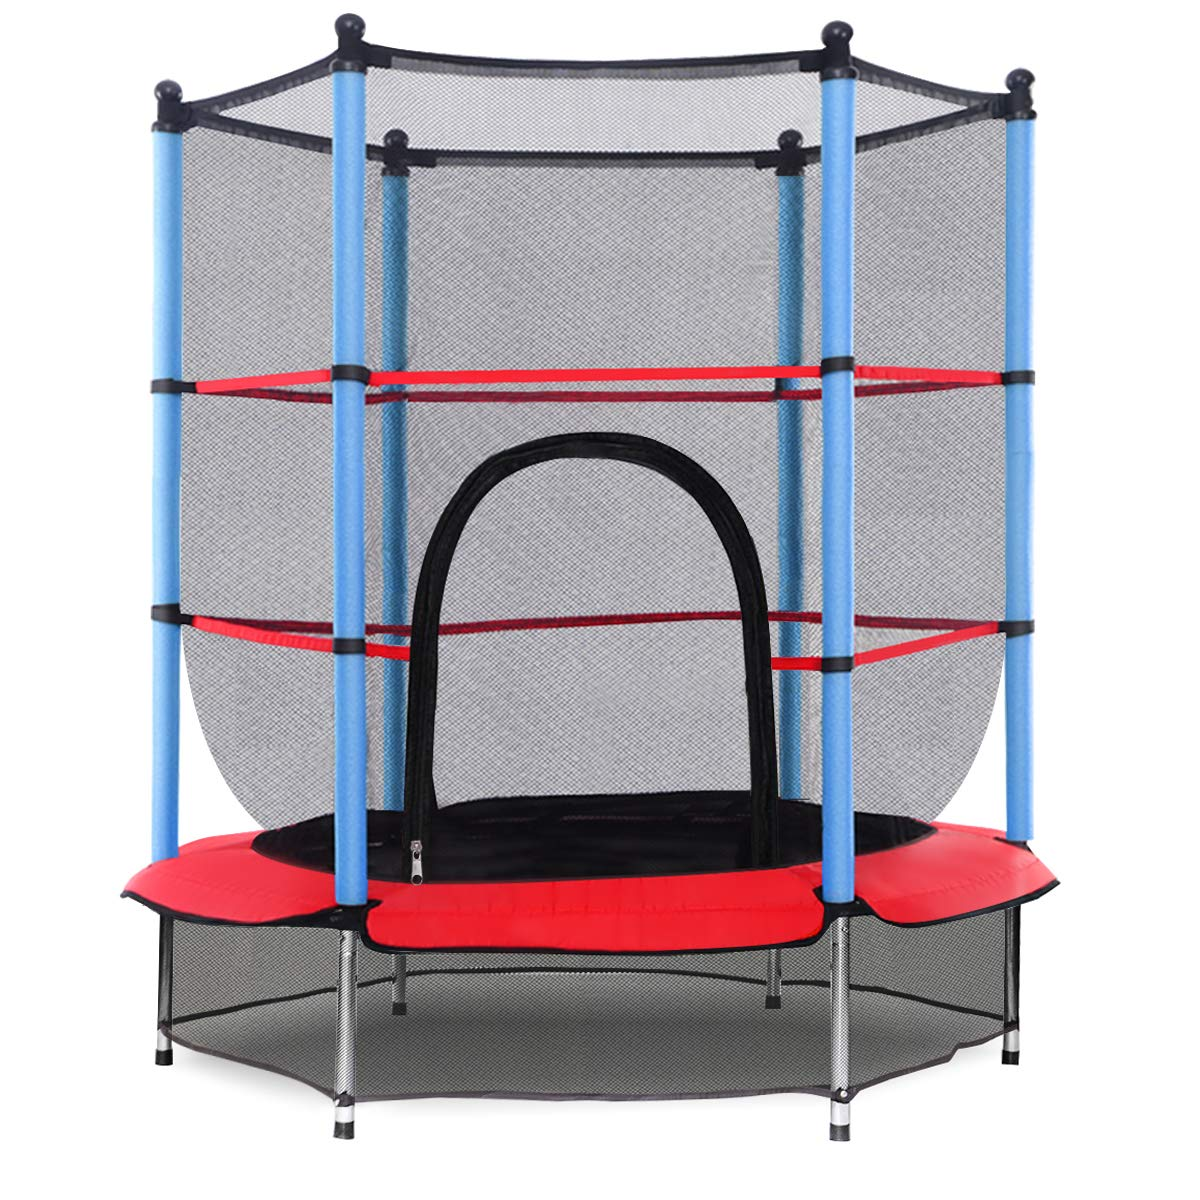 Giantex 55'' Round Kids Mini Jumping Trampoline W/Safety Pad Enclosure Combo (Multicolor) (Black+Blue+Red) by Giantex